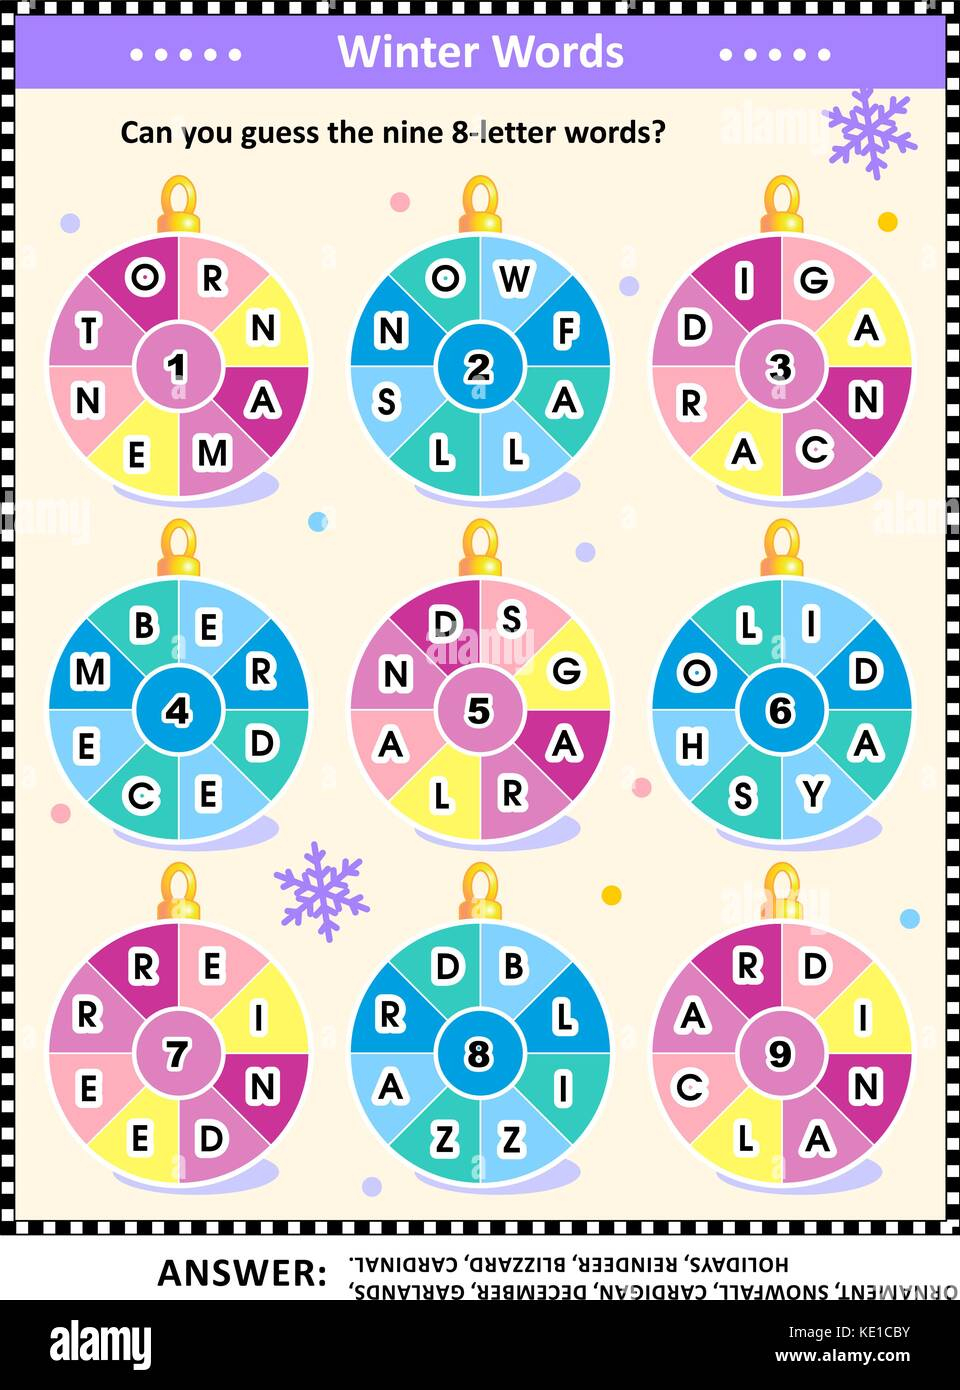 Word puzzle (English language) with winter and holiday words written around the ornaments: Can you guess the nine - Stock Image